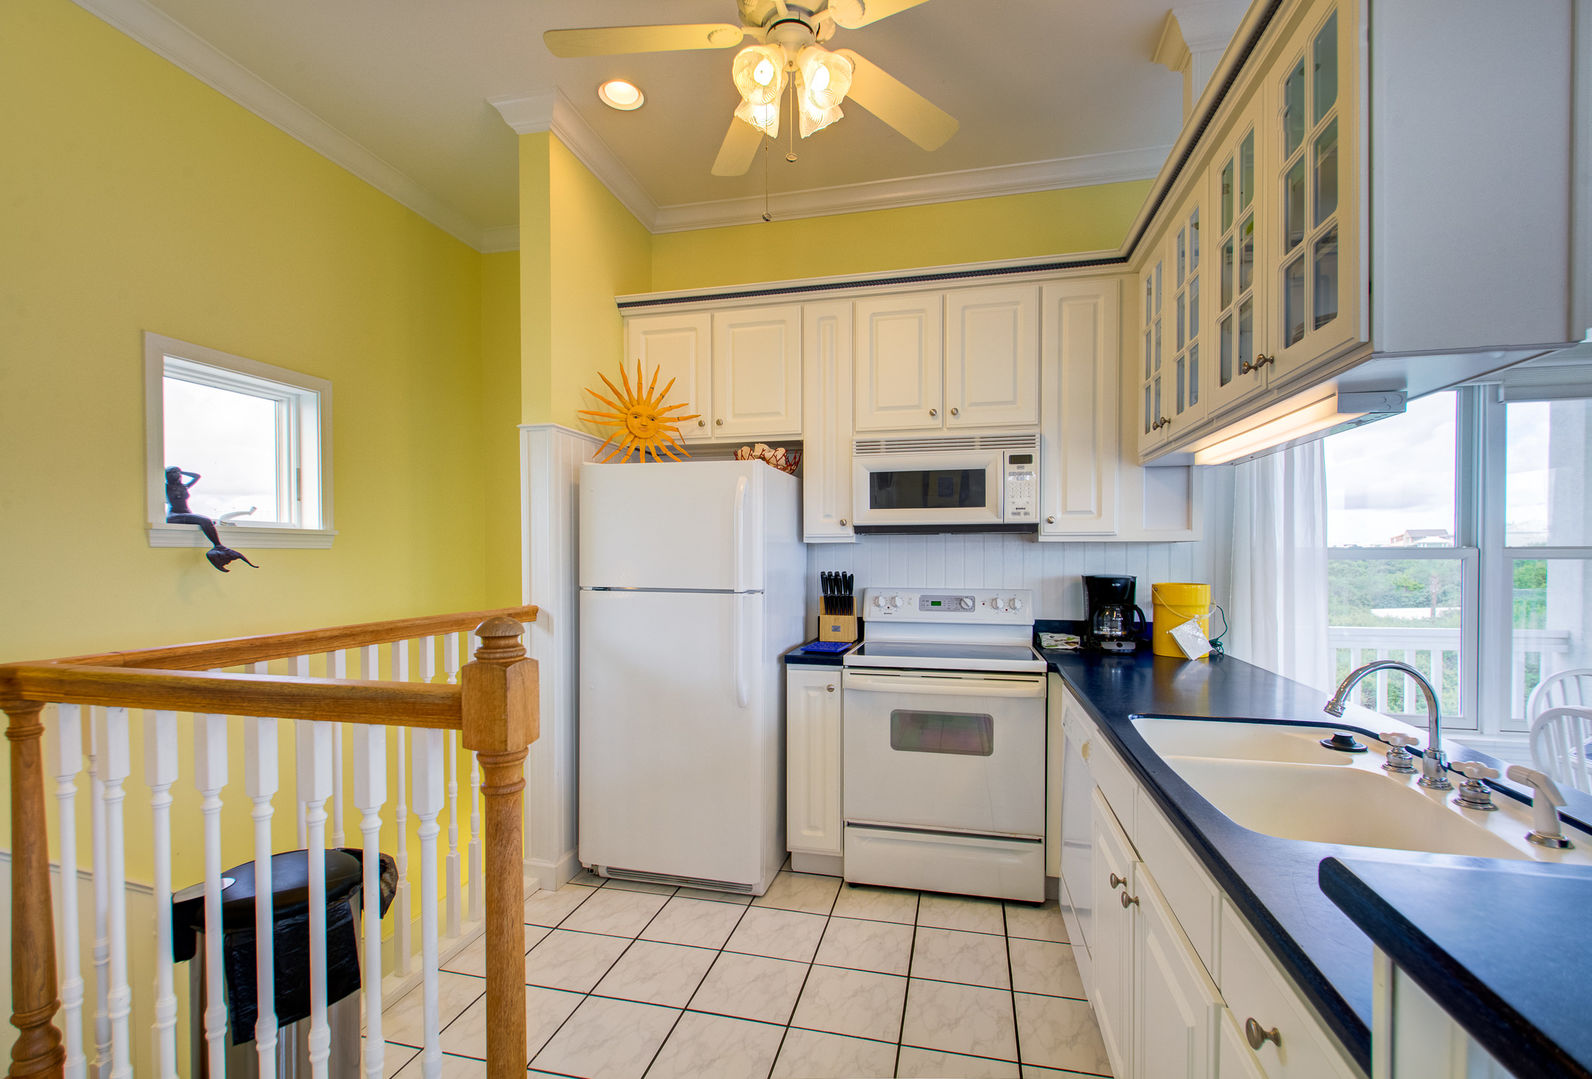 Kitchen Features Plenty of Cabinet and Counter Space.